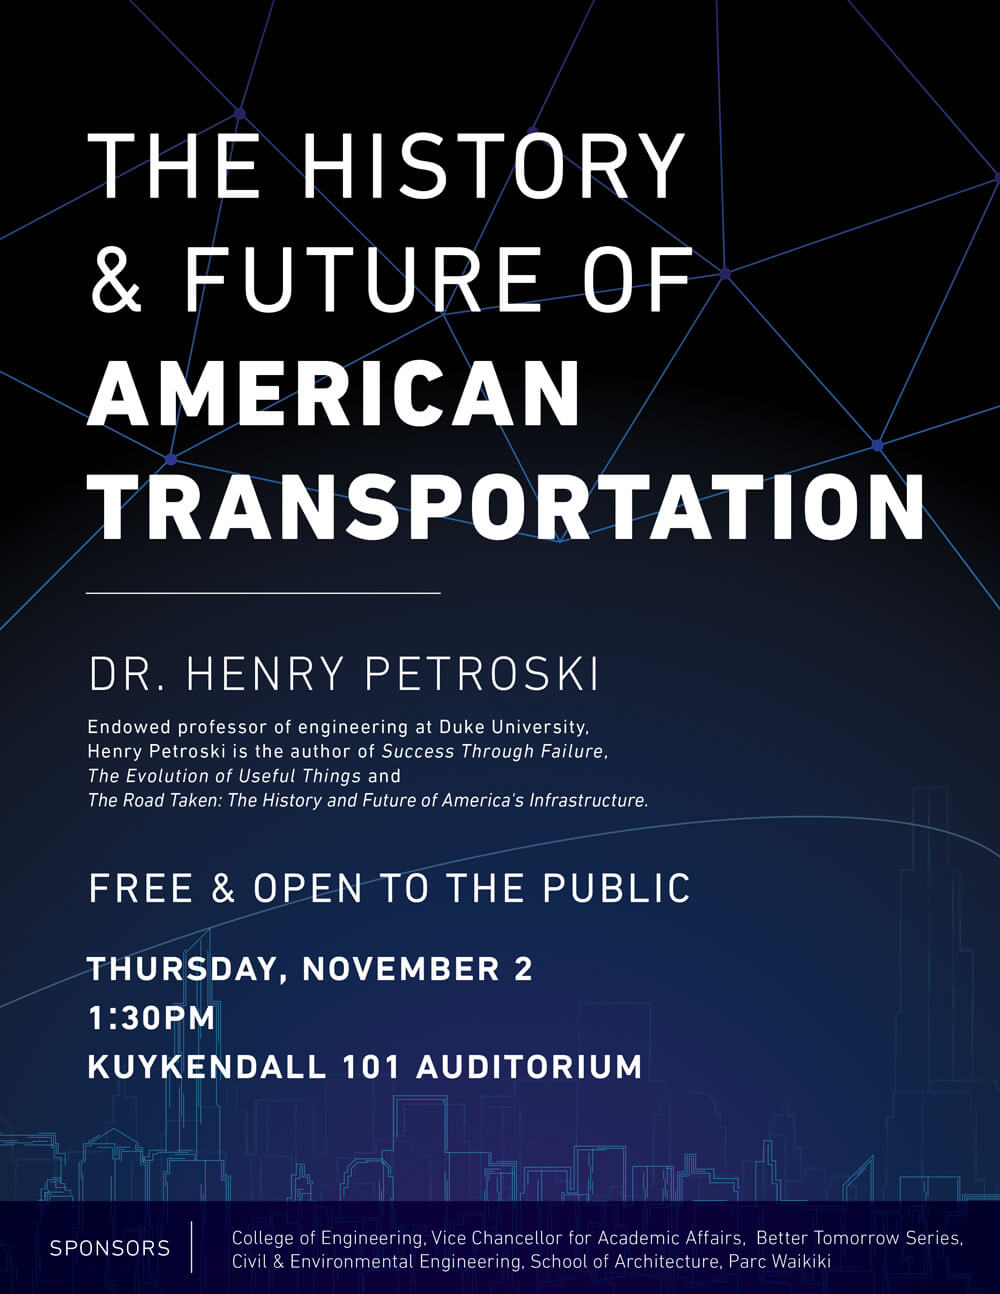 Renowned engineering professor at Duke University and award-winning author,  Henry Petroski, discusses the history and future of transportation, ...